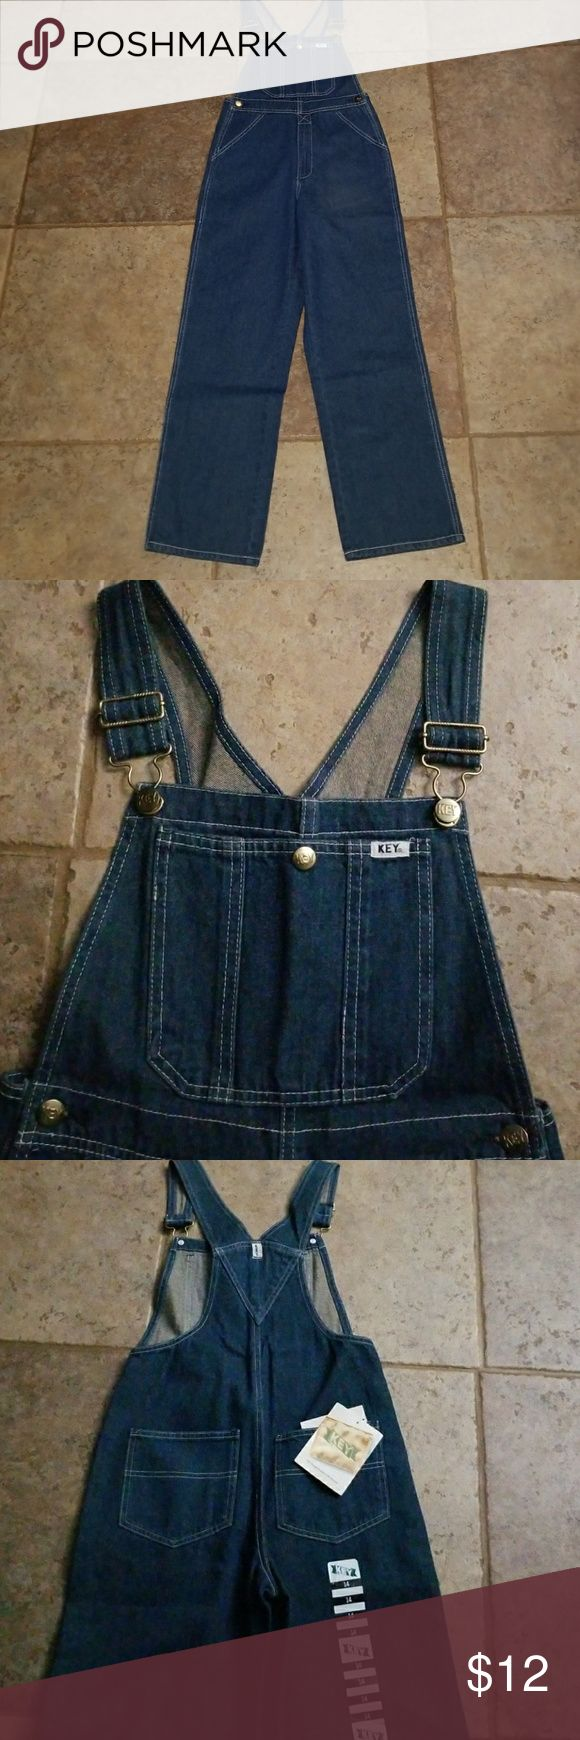 Youth denim bib overalls Unlined denim bib overalls by Key Industry. Youth size 14. New with tags! Key Industry Bottoms Overalls